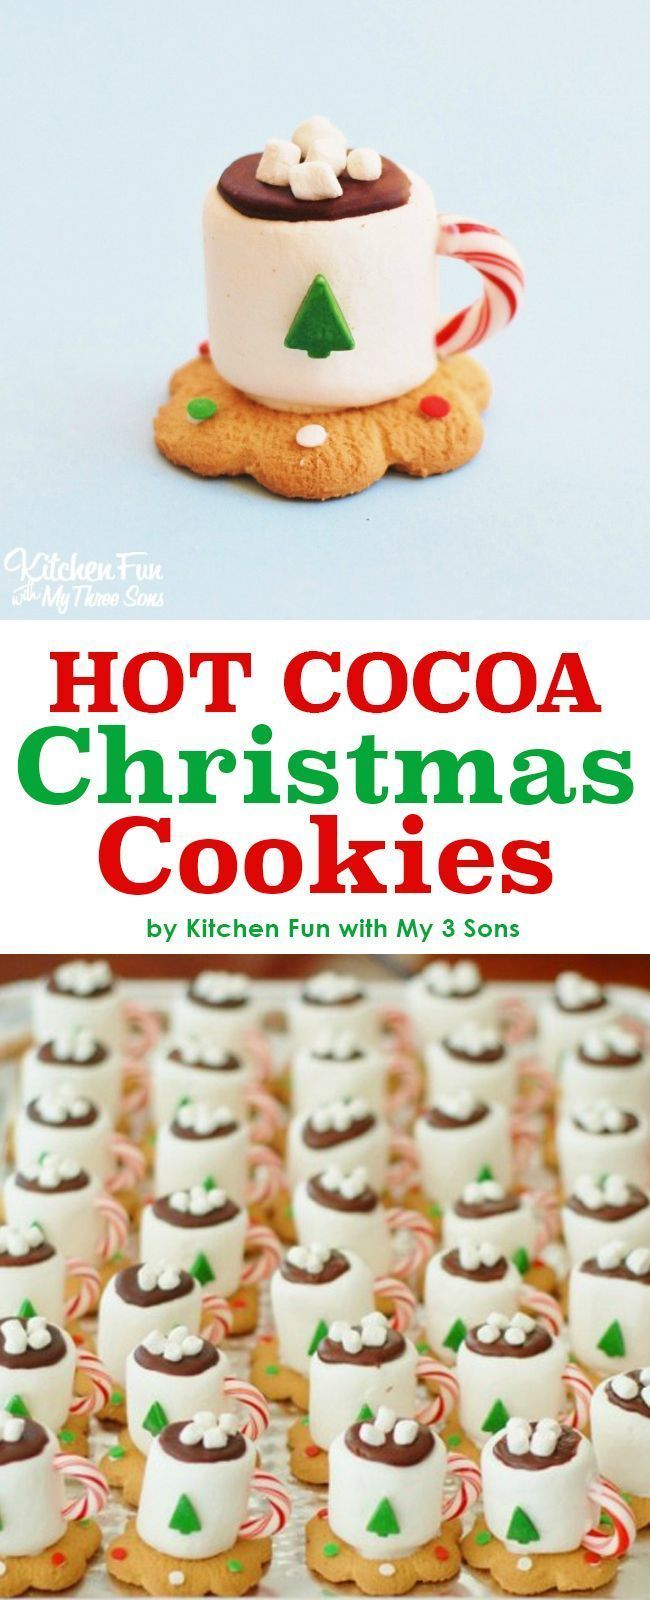 302 best Christmas Desserts images on Pinterest | Christmas ...